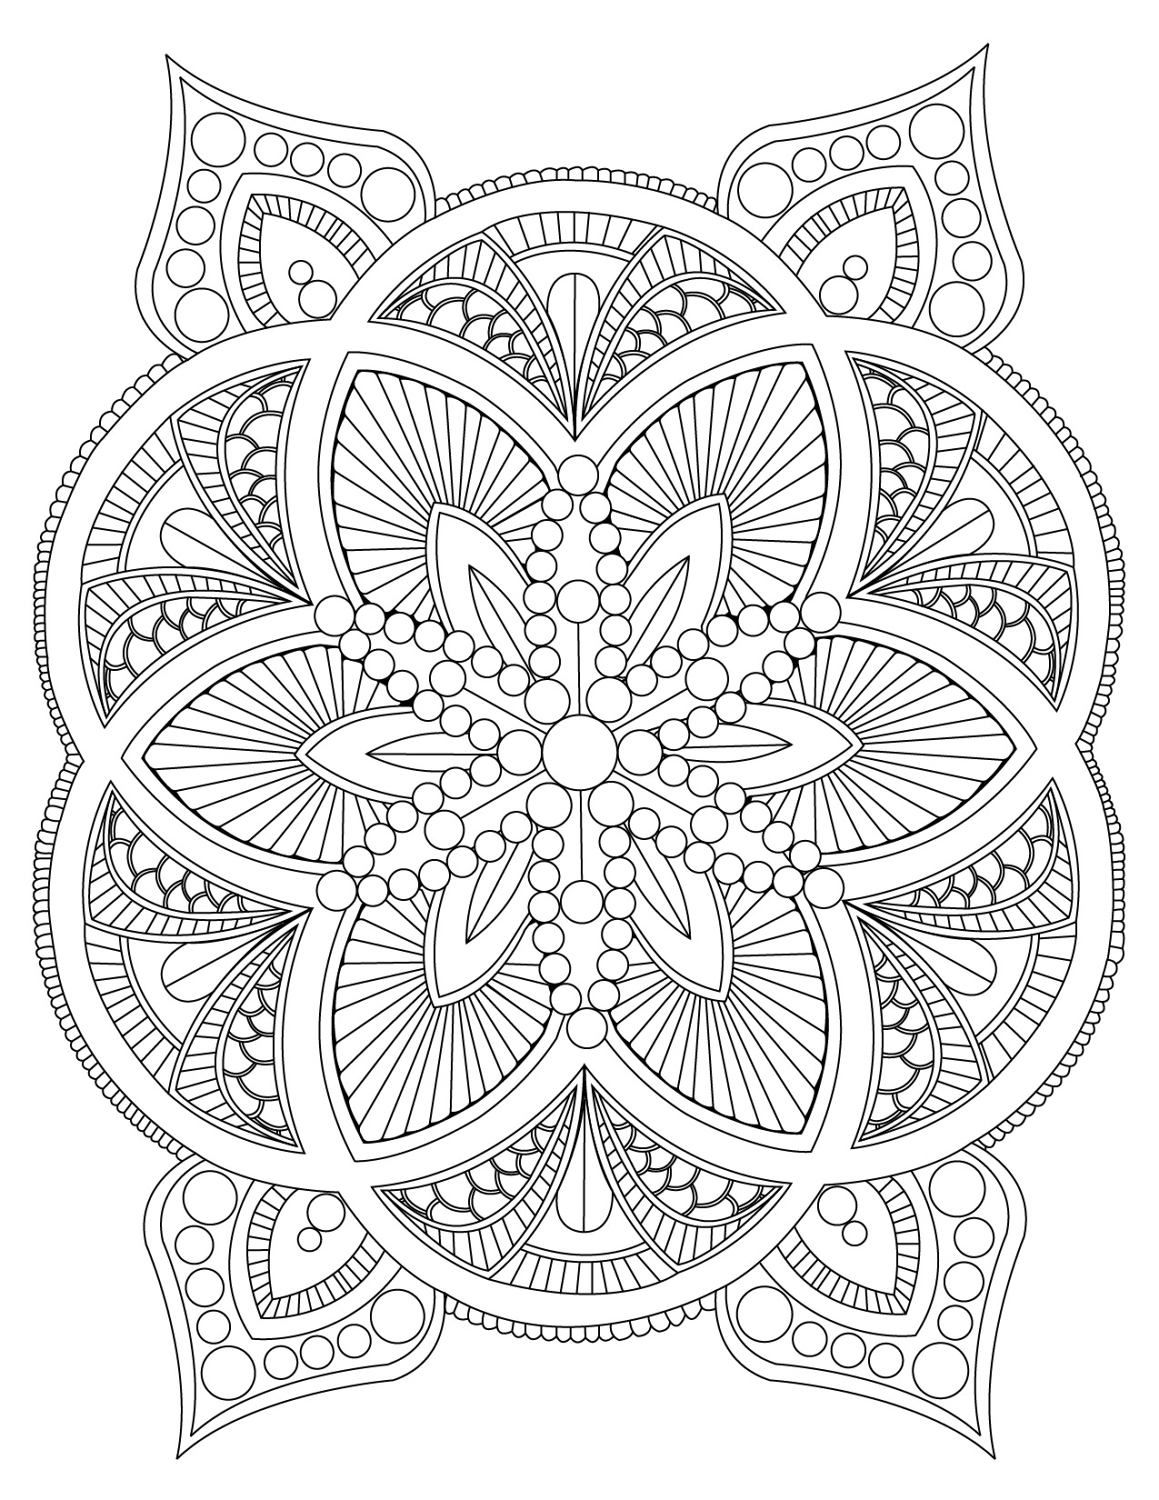 Abstract Mandala Coloring Page For Adults Digital Download Mandala Coloring Pages Abstract Coloring Pages Mandala Coloring Books